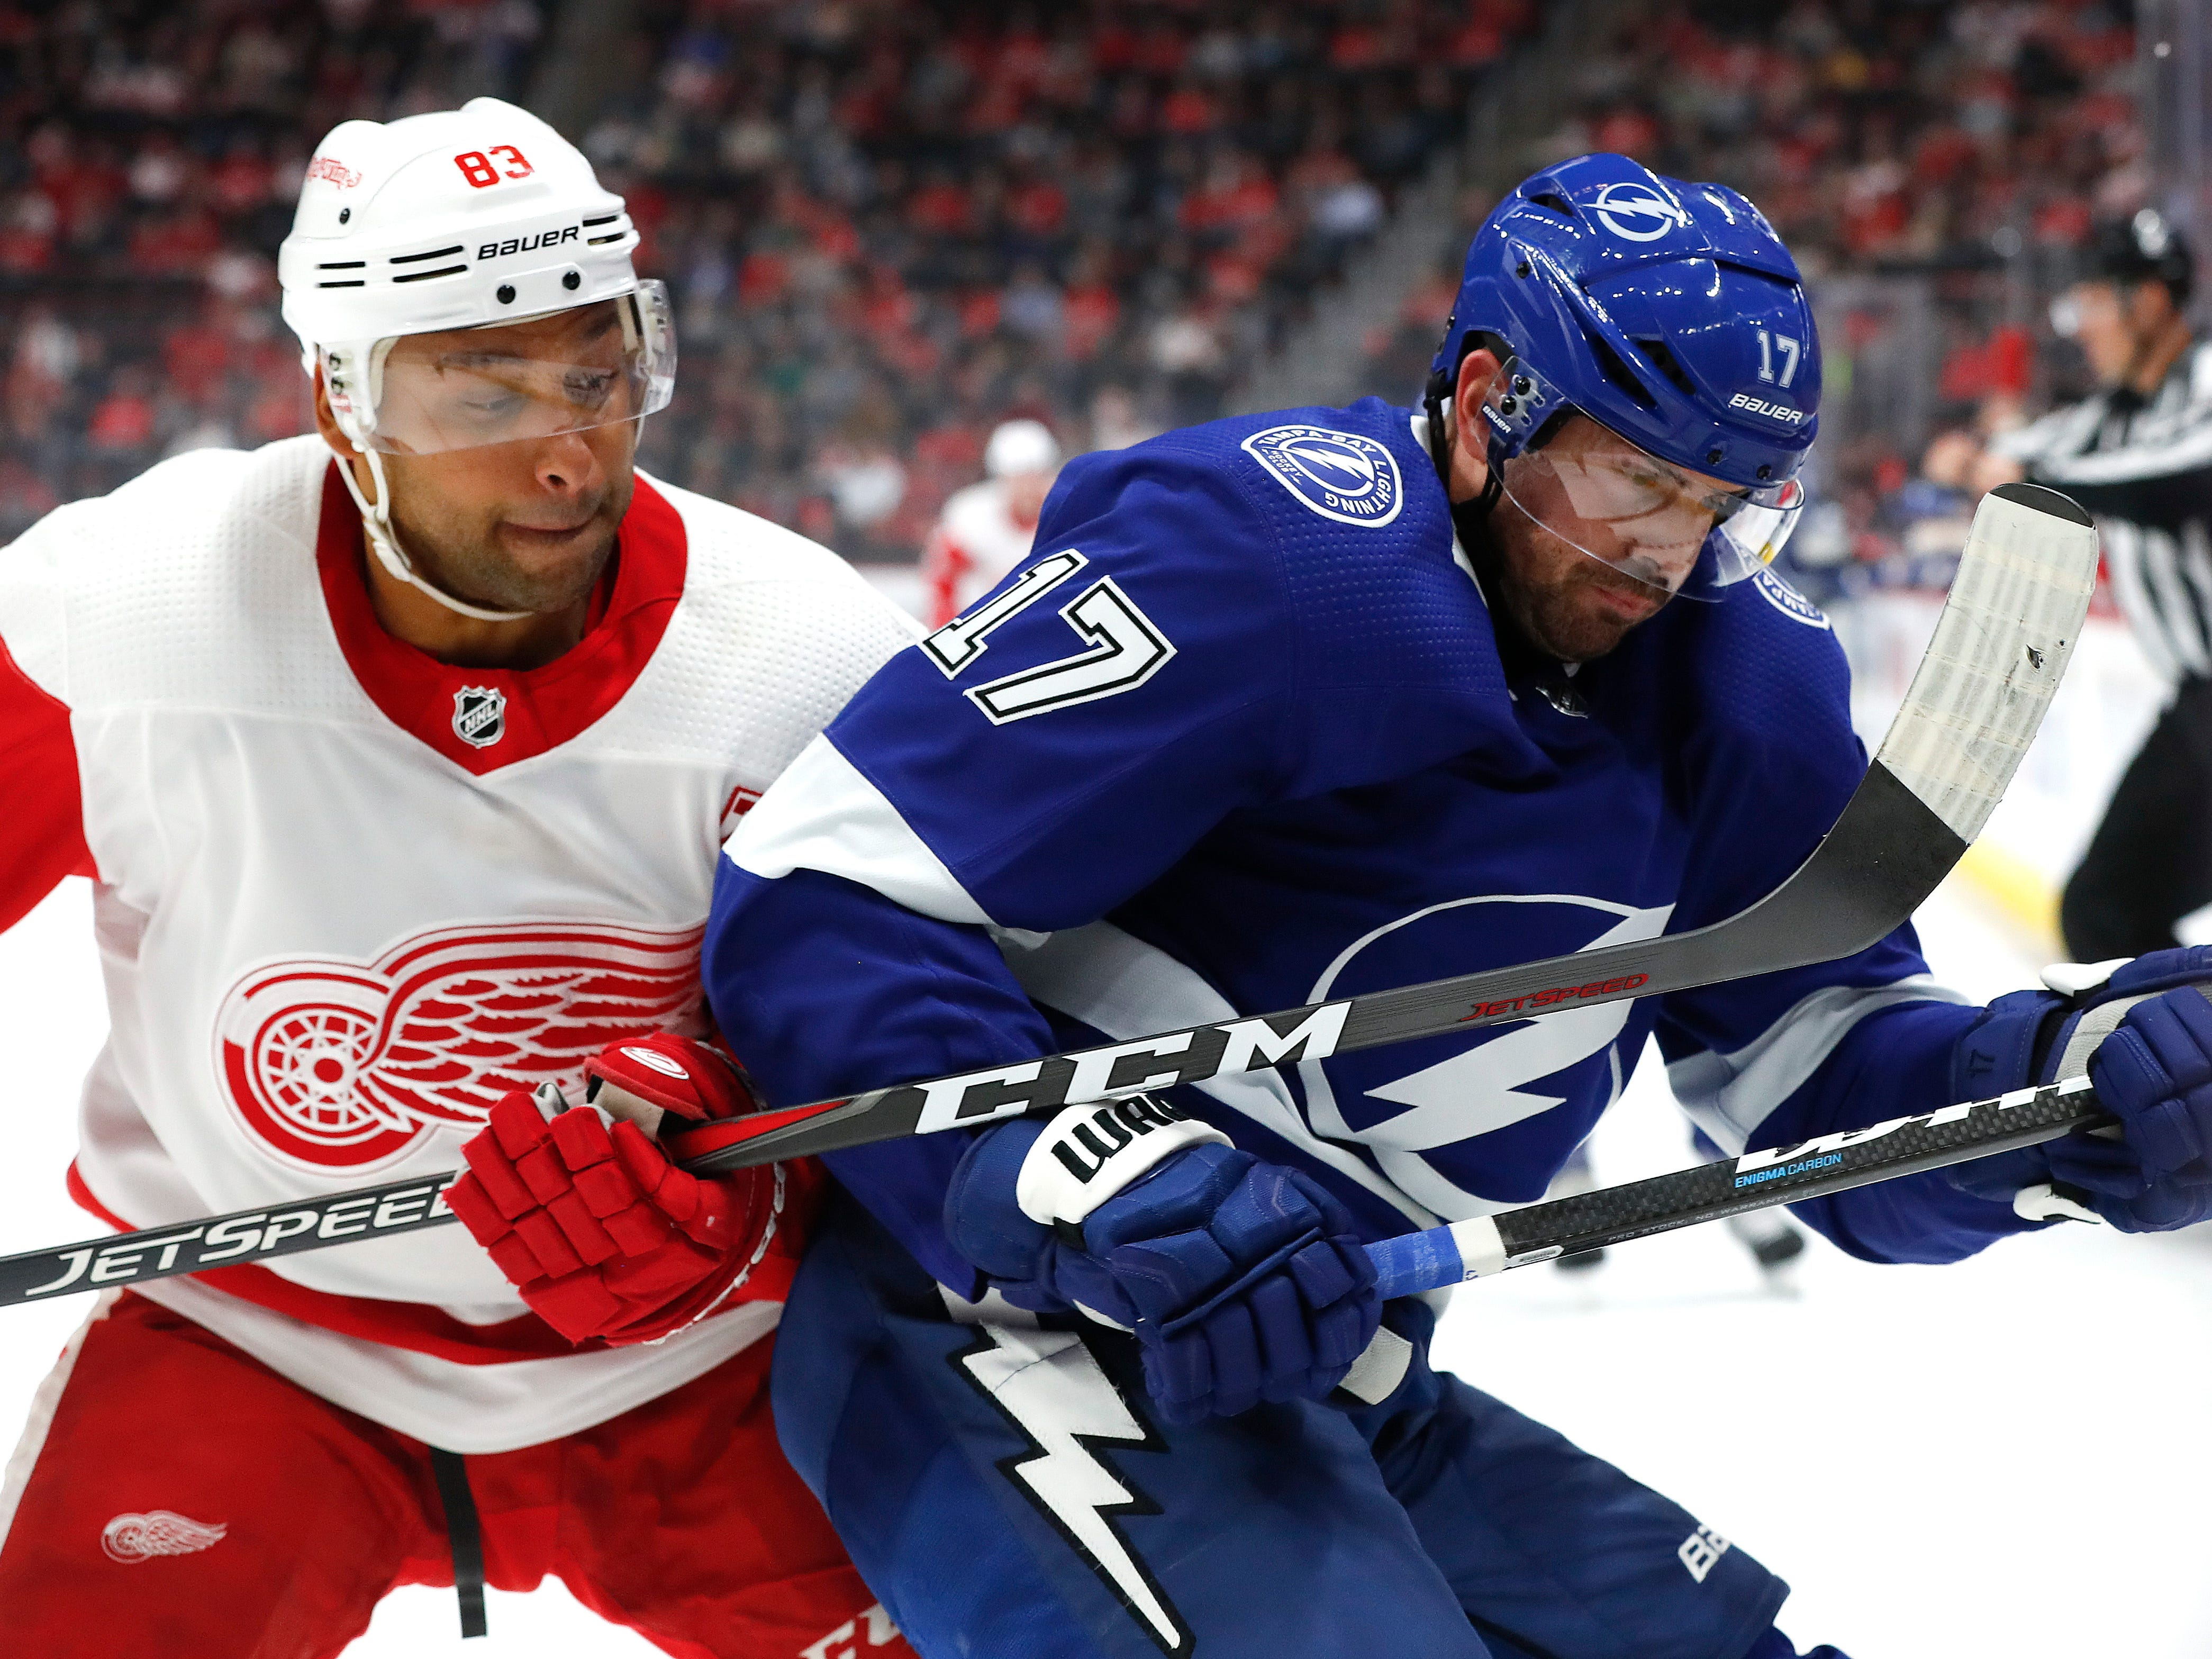 Detroit Red Wings defenseman Trevor Daley (83) and Tampa Bay Lightning left wing Alex Killorn (17) battle for the puck in the first period.